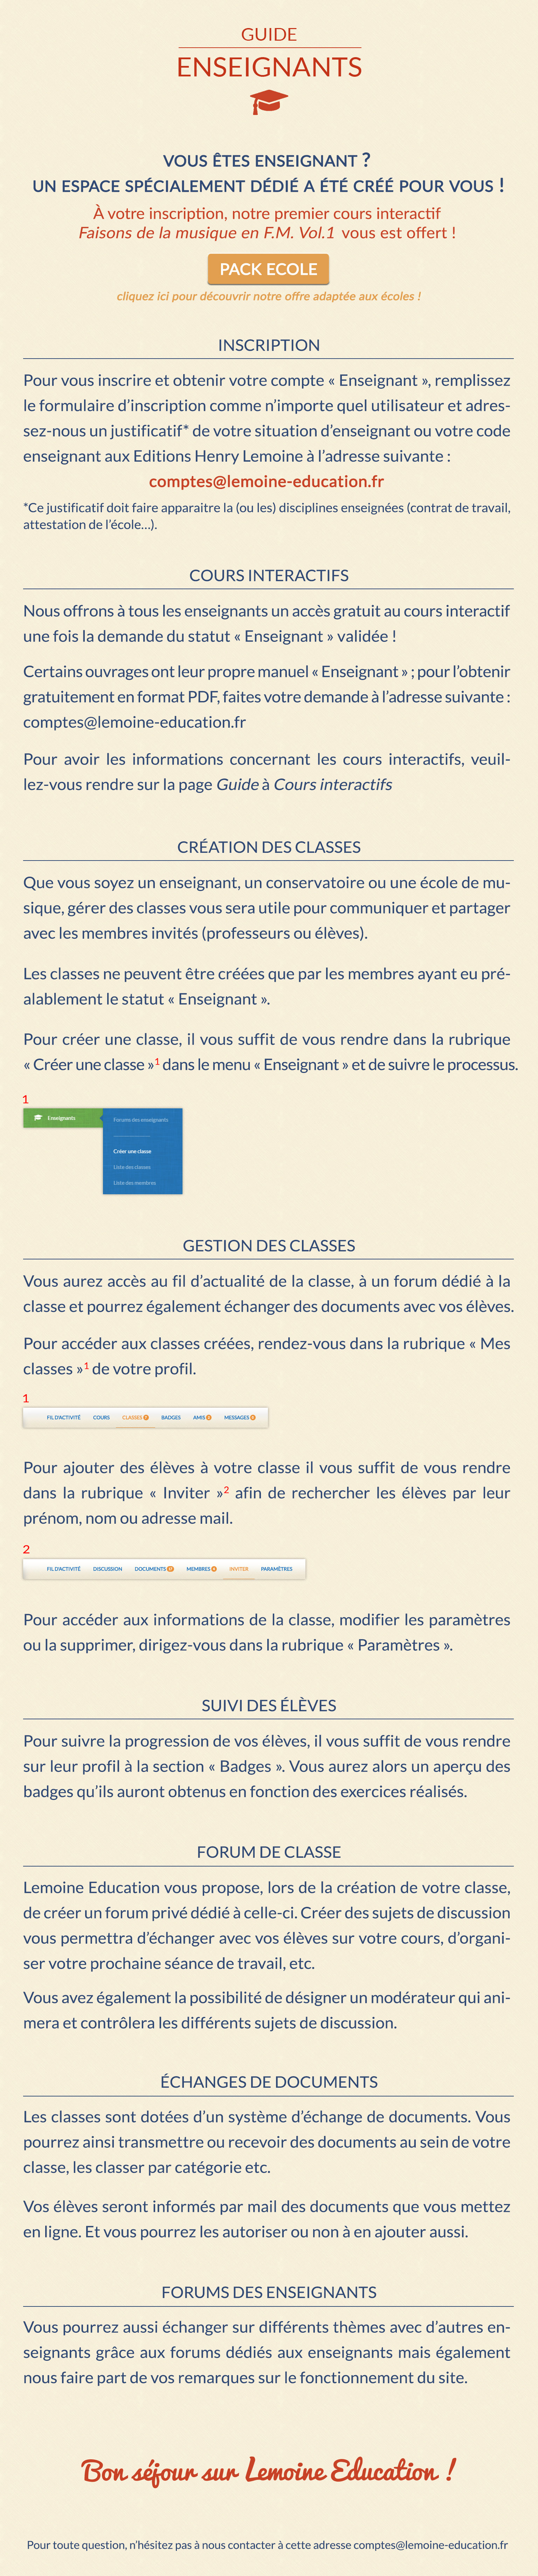 Guide - Enseignants 3